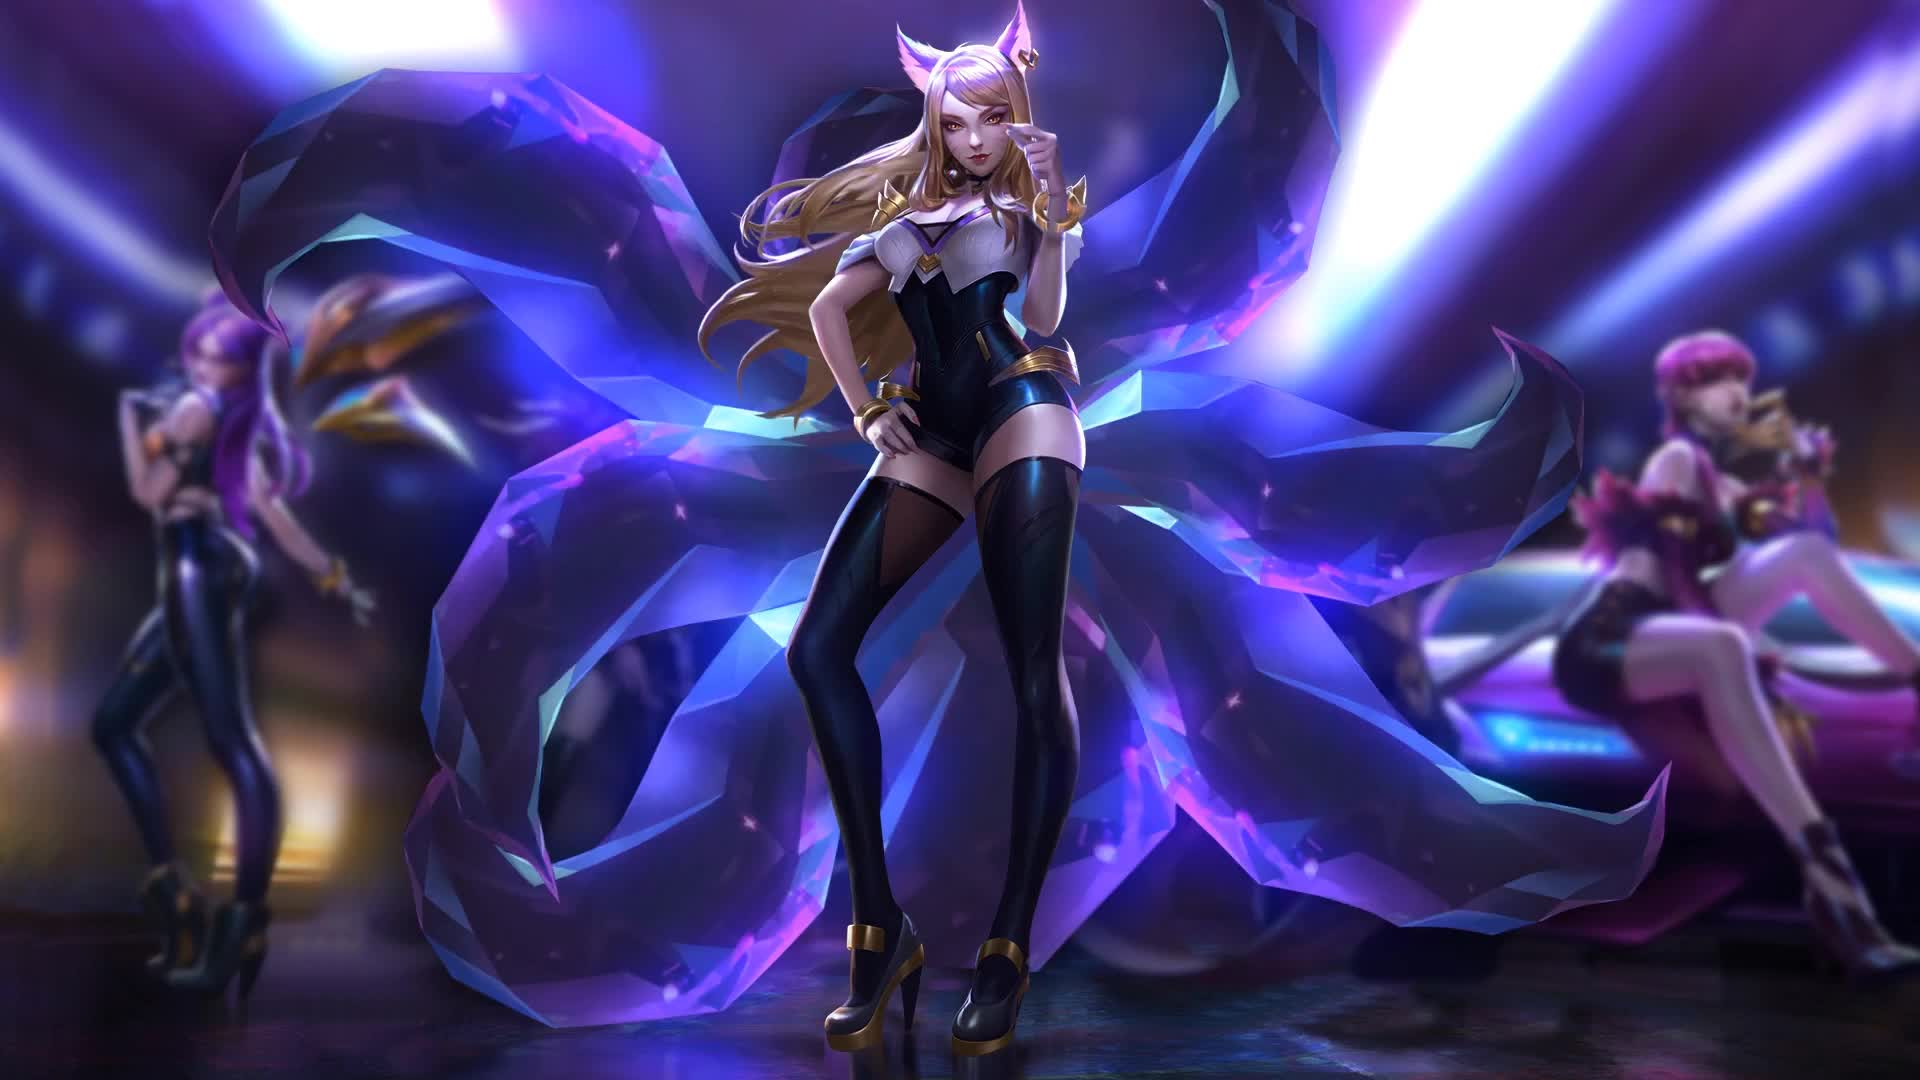 League Of Legends Gif Kda 1920x1080 Download Hd Wallpaper Wallpapertip